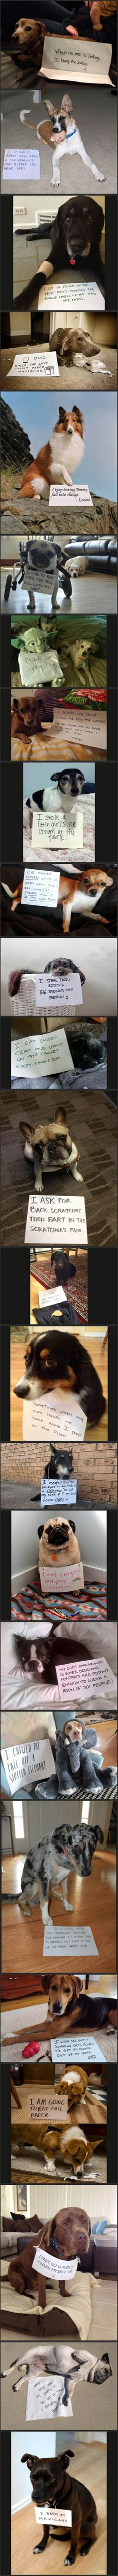 The best of dog shaming!